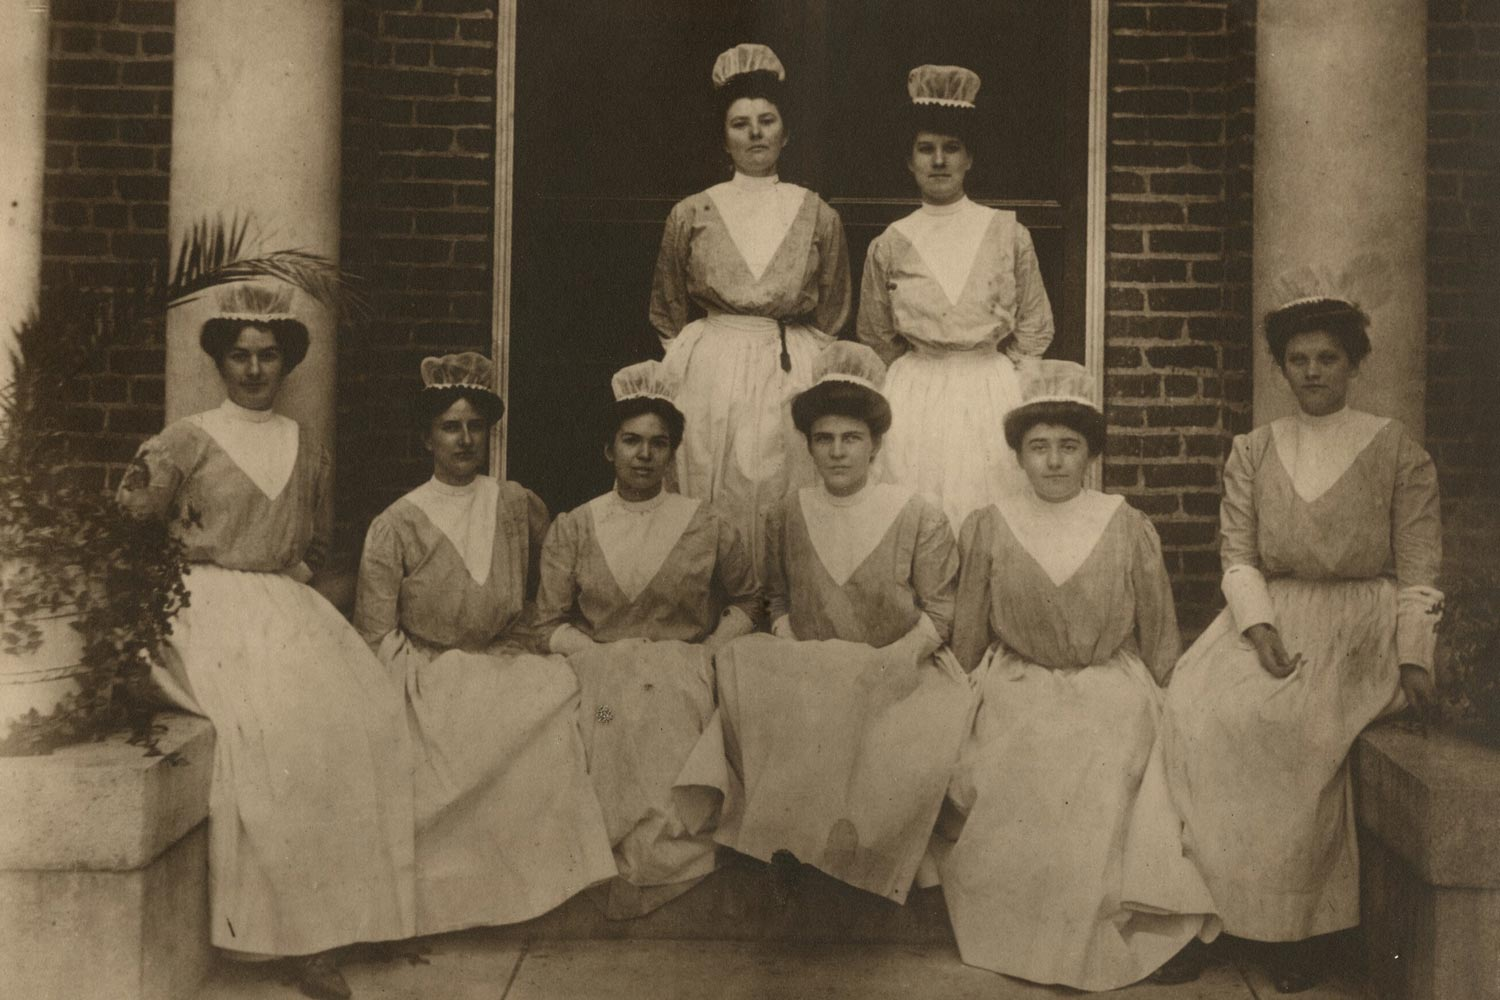 The School of Nursing's classes of 1905 through 1908. Women were present on Grounds long before full coeducation, but were restricted to only a few fields of study.